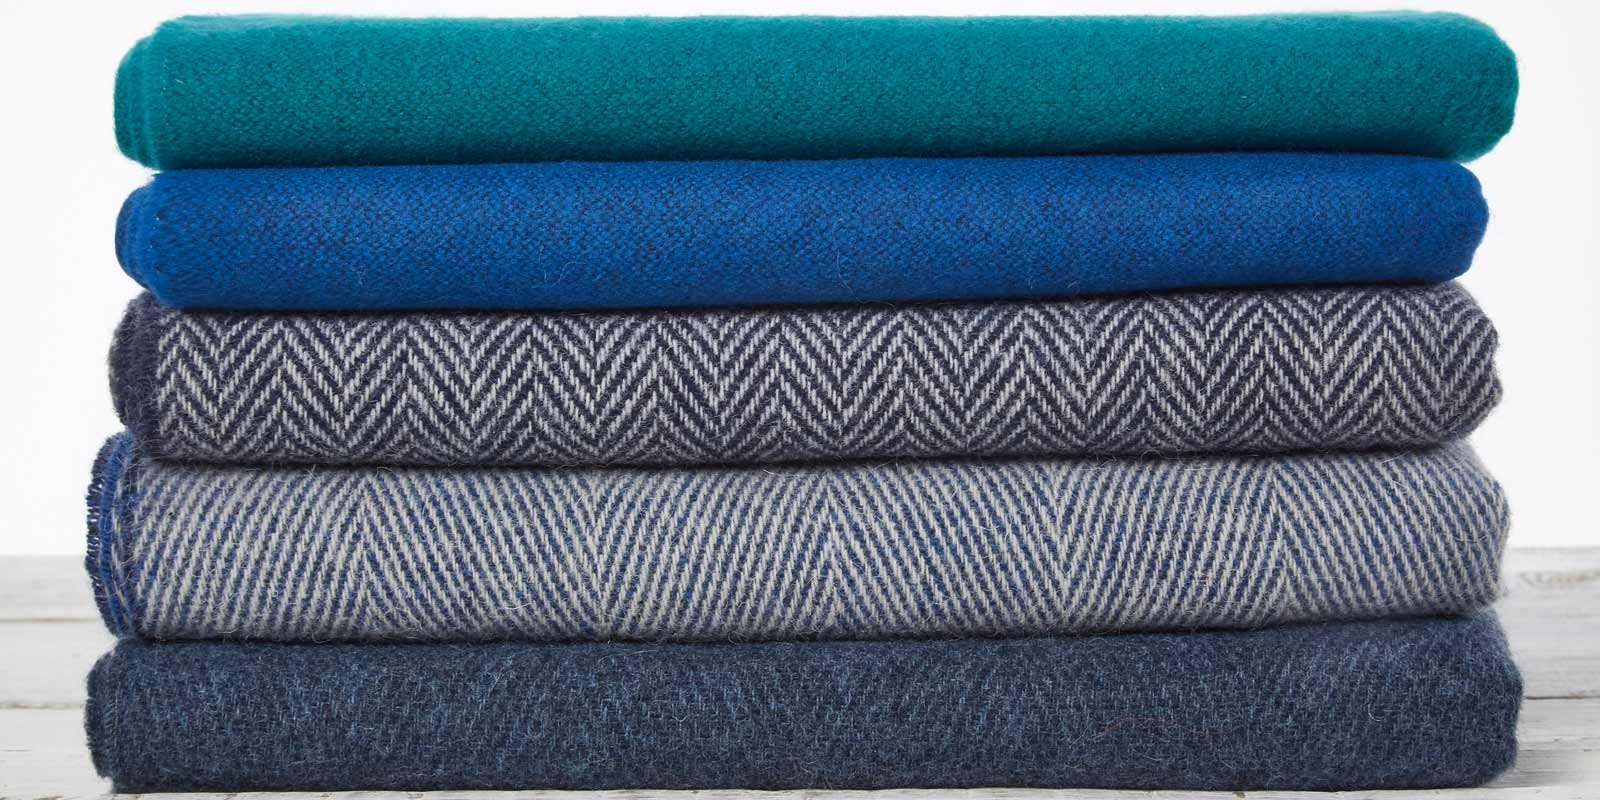 blue wool throws and blankets